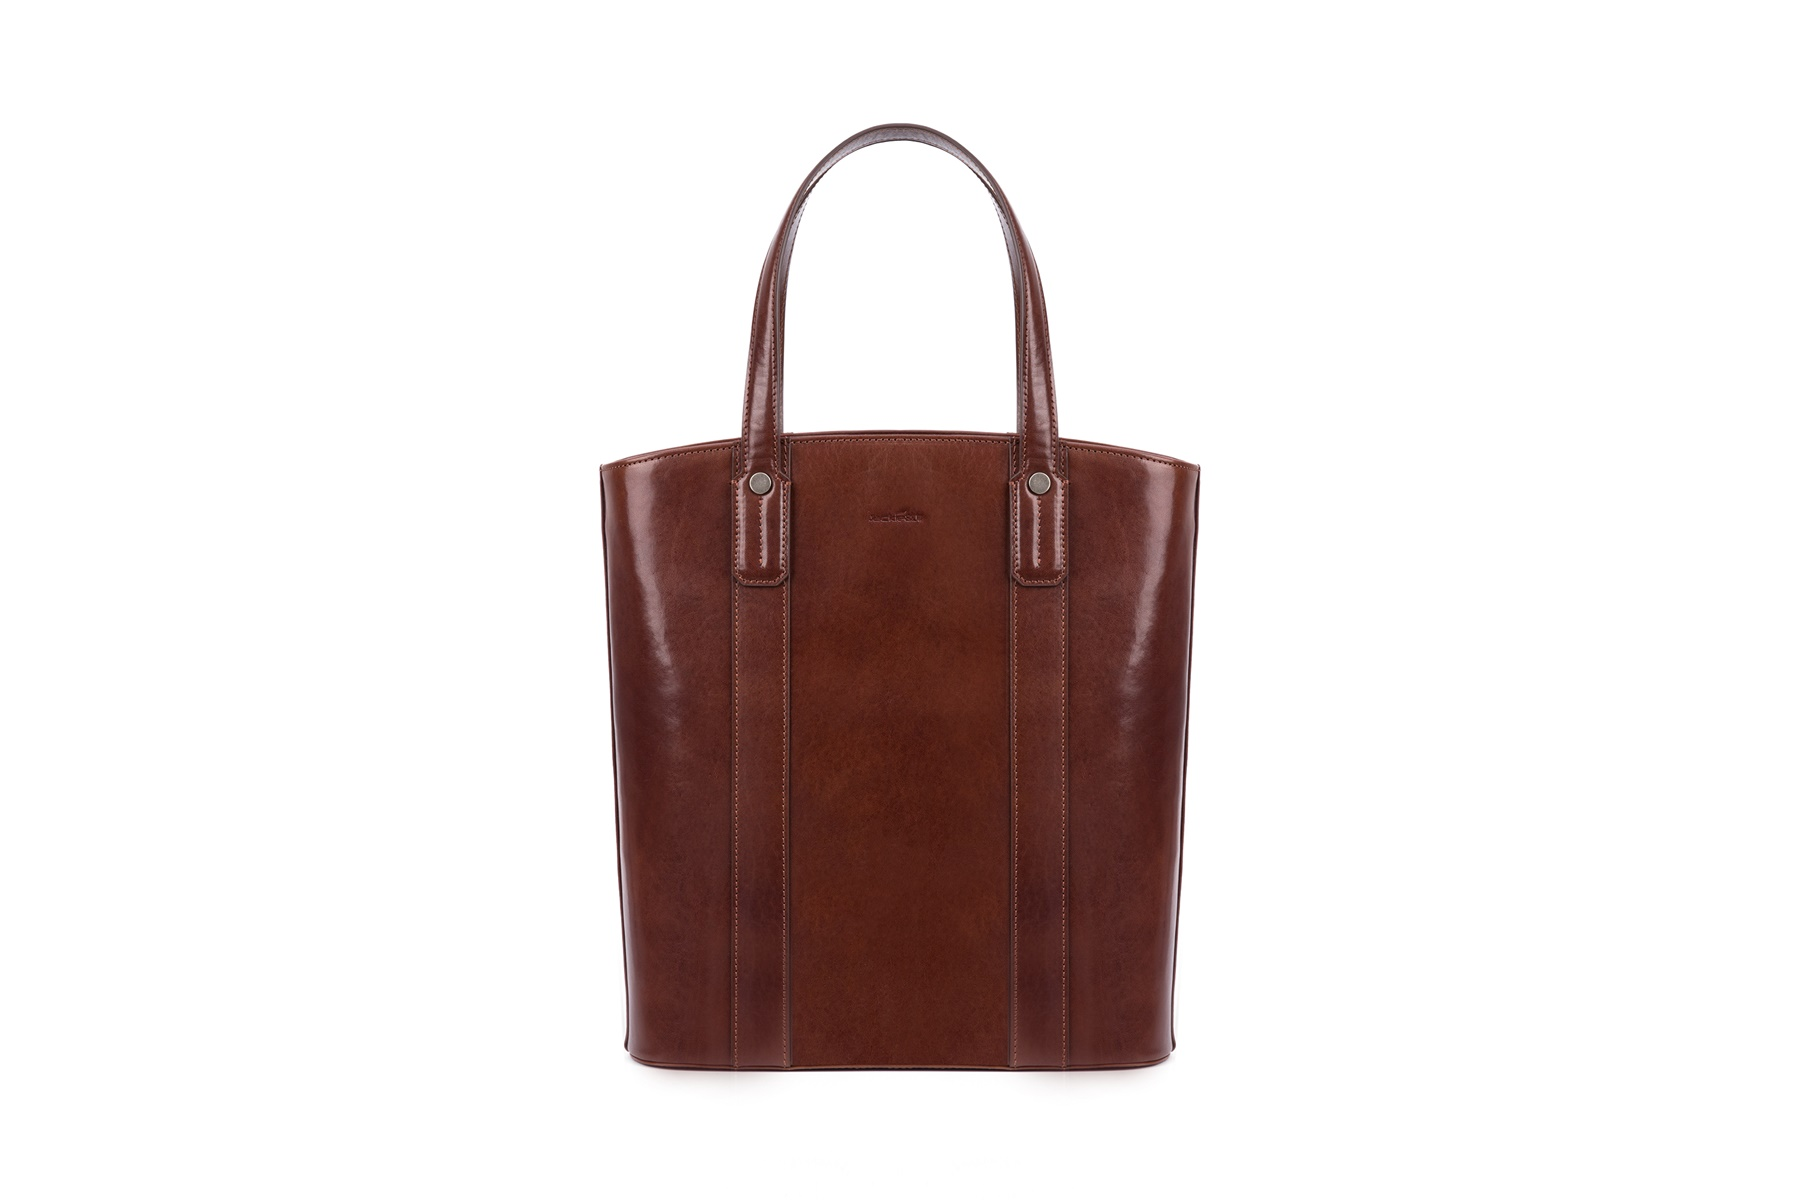 GF bags-Womens Work Tote Tote Leather Handle With Zipper Closure-4